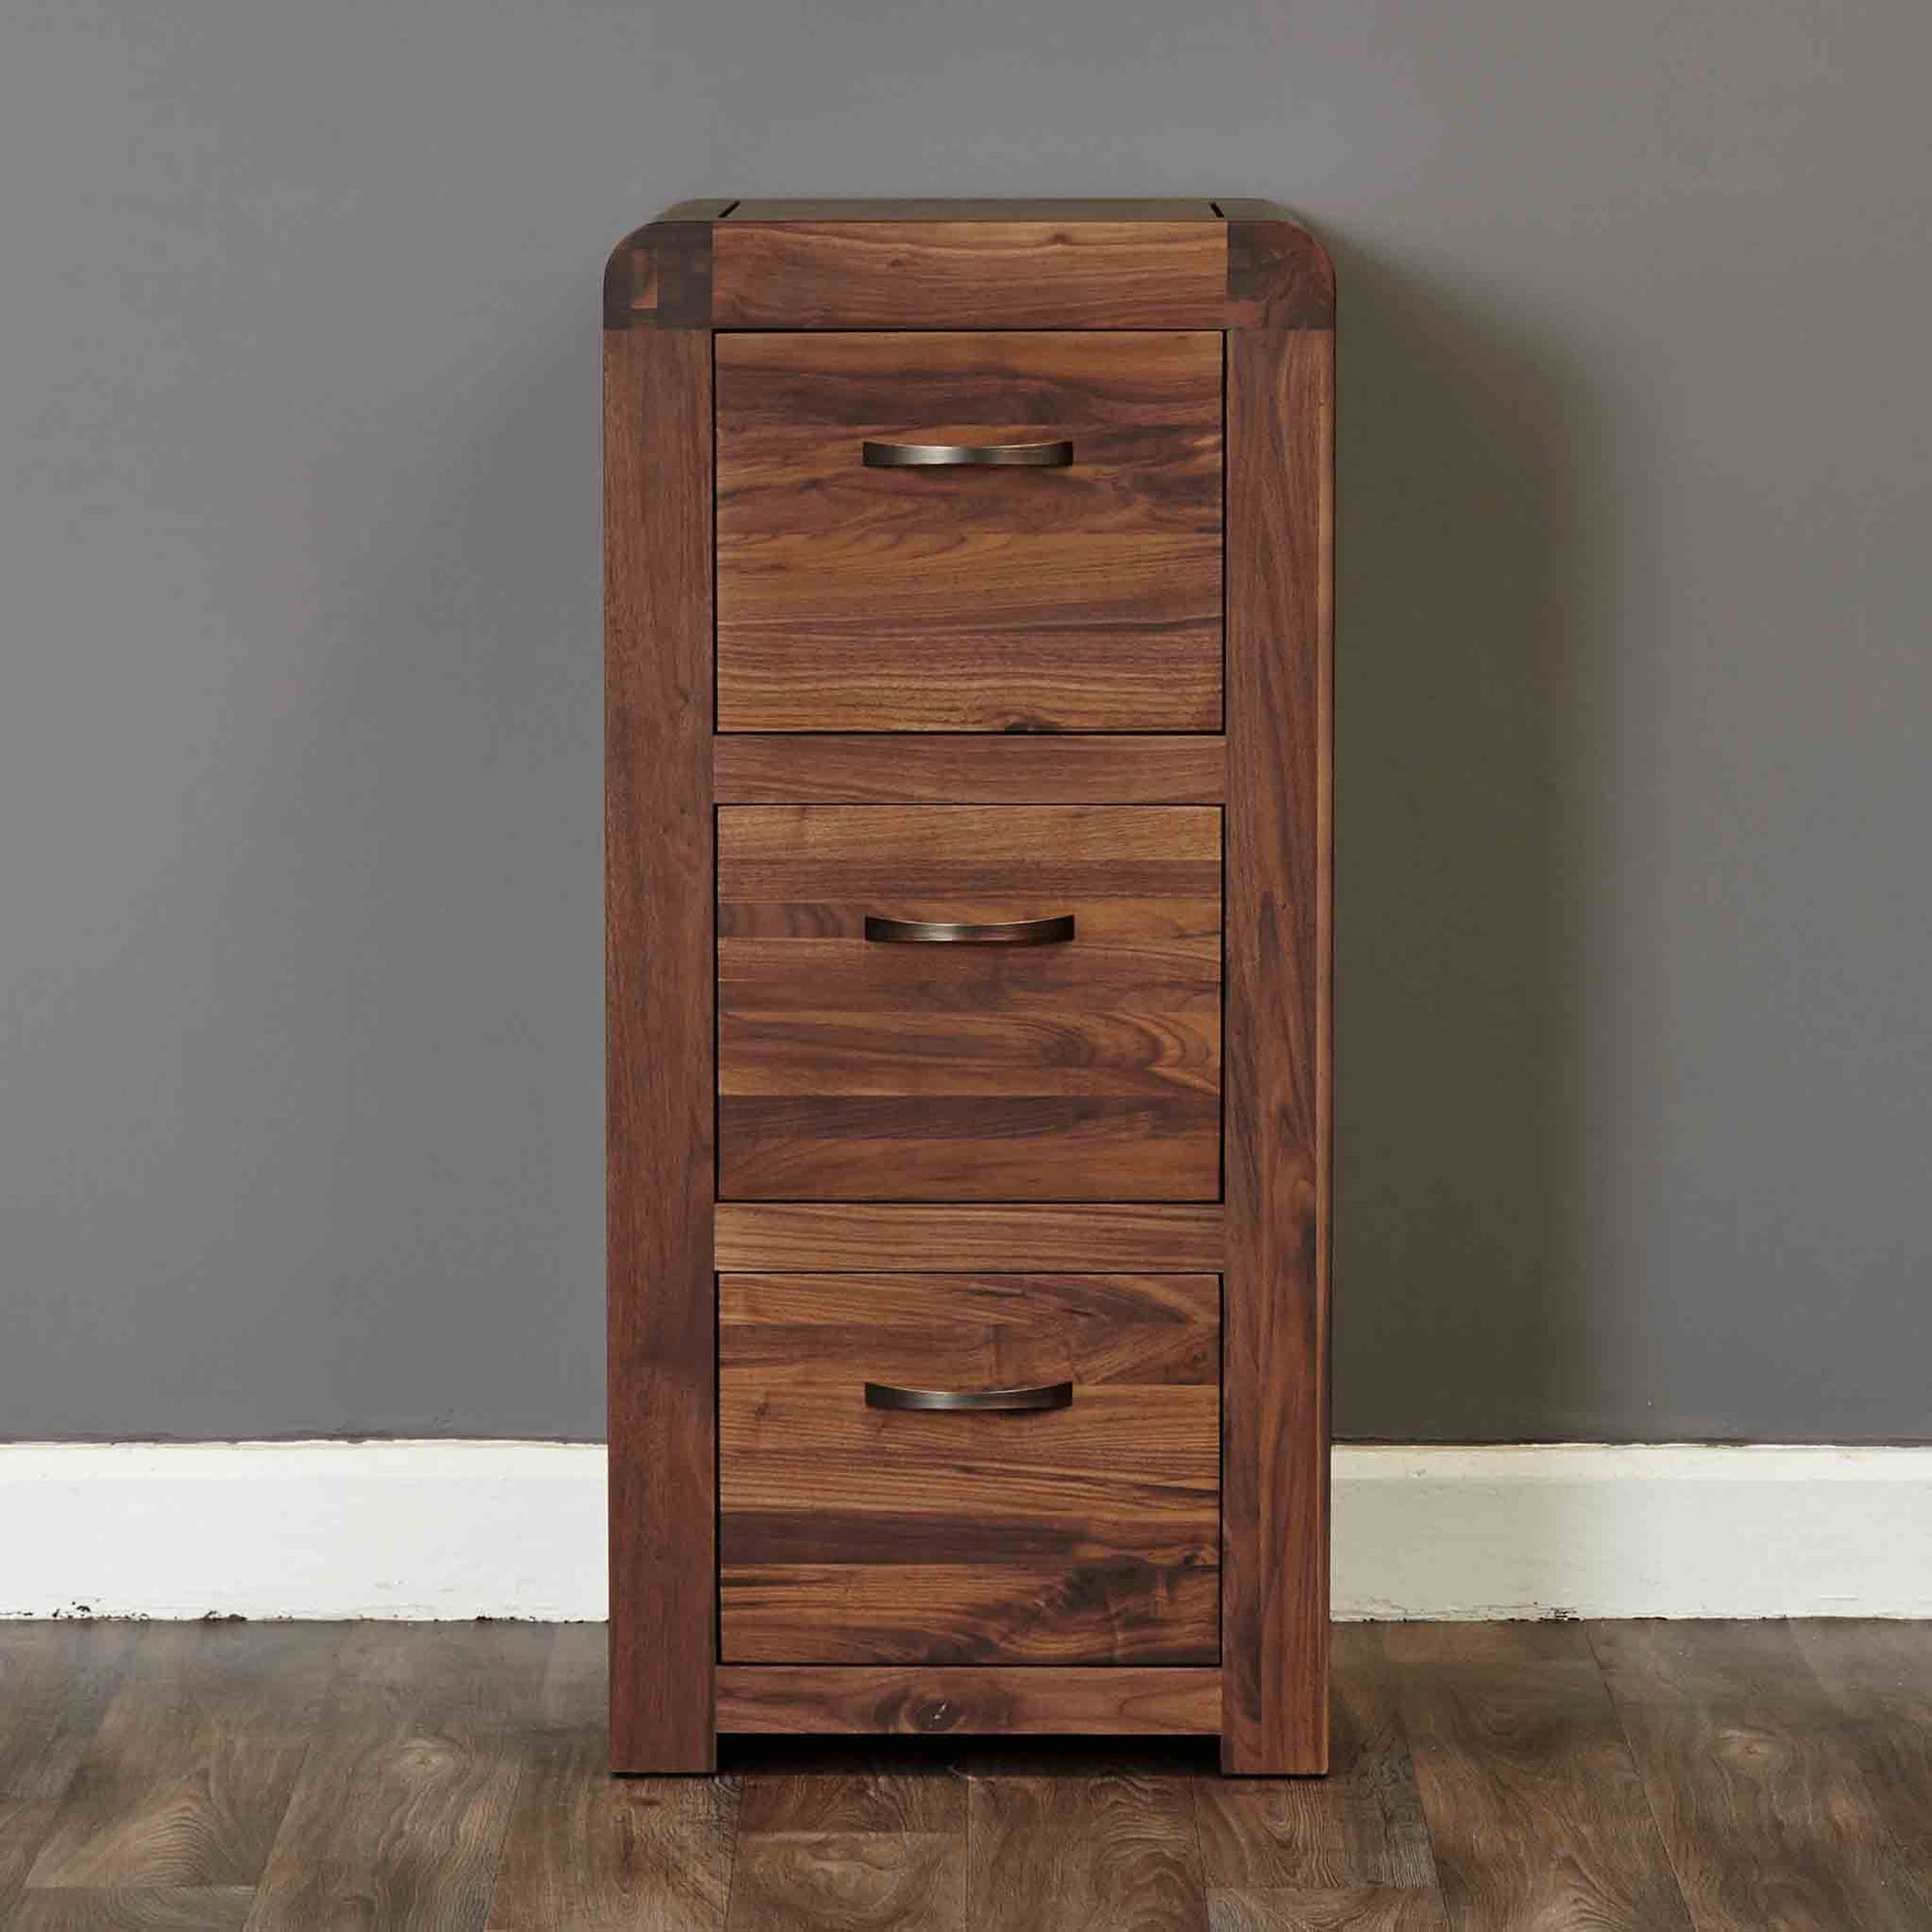 The Salem Walnut Large Wooden Office Filing Cabinet from Roseland Furniture